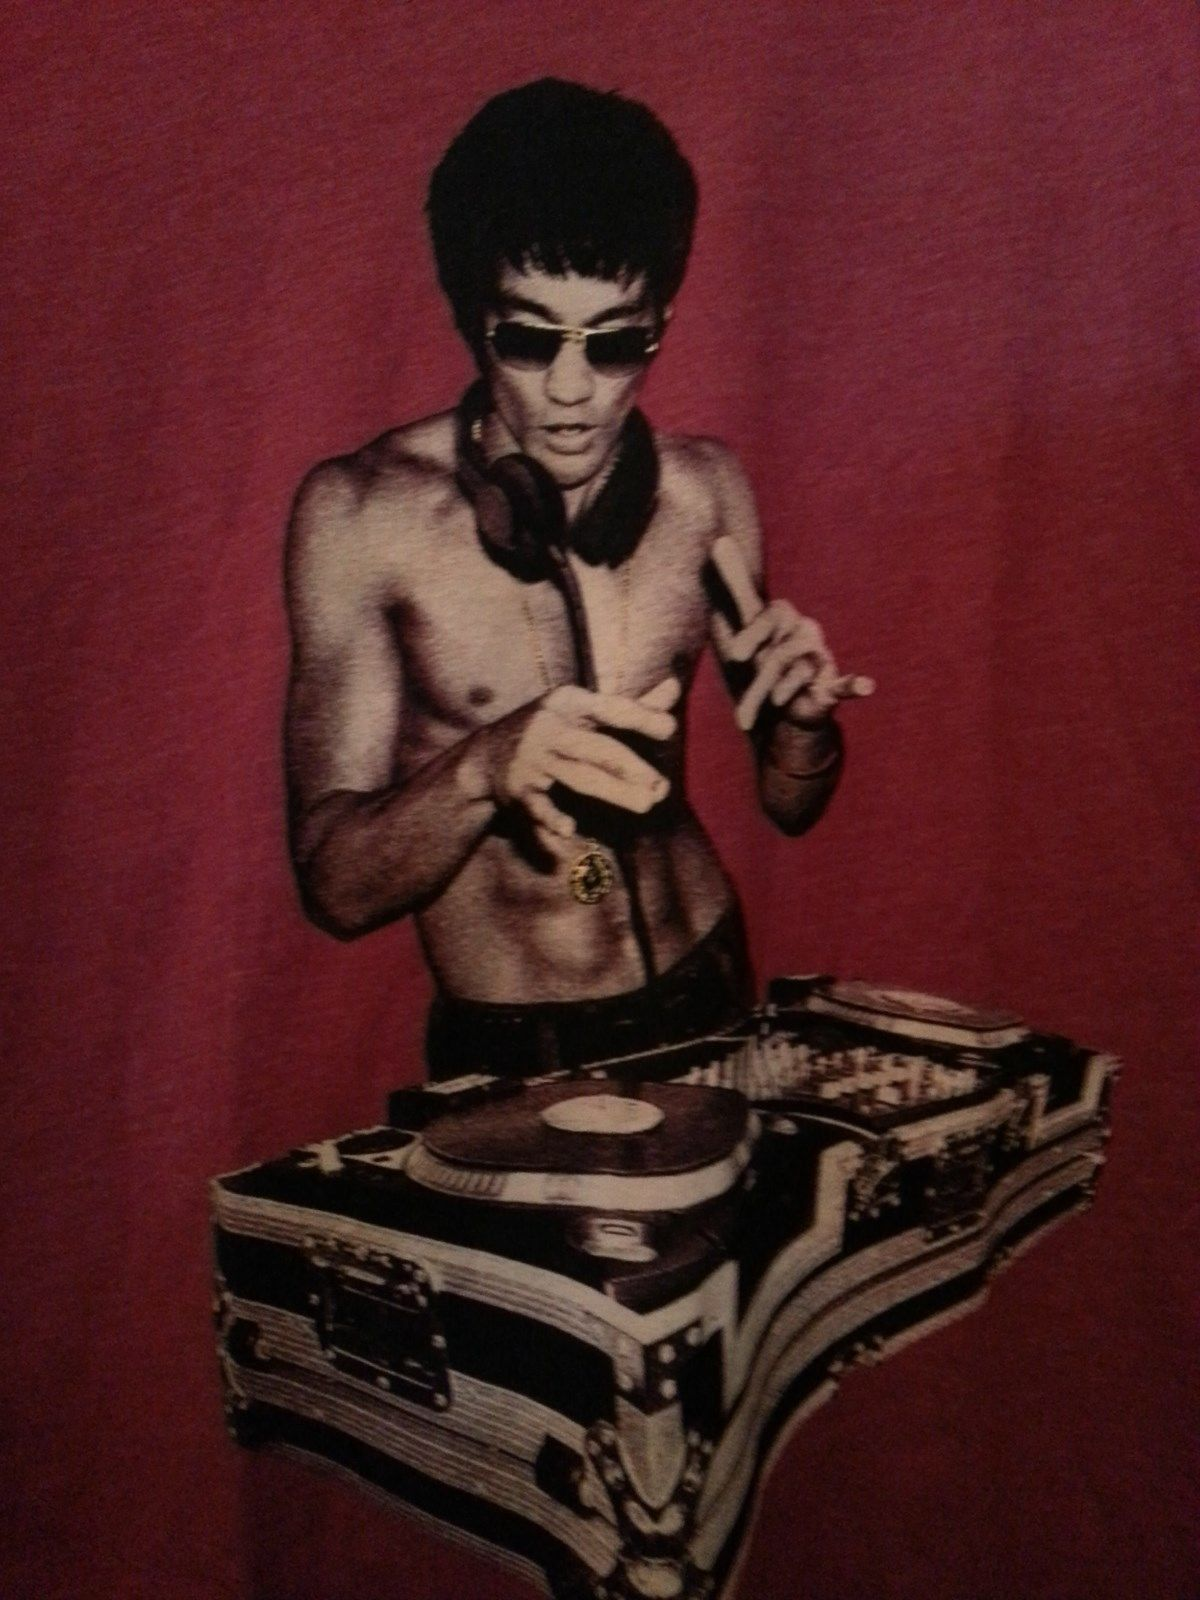 Bruce Lee DJ T shirt Brick Red Small, Medium, Large or Xlarge Special Edition image 3